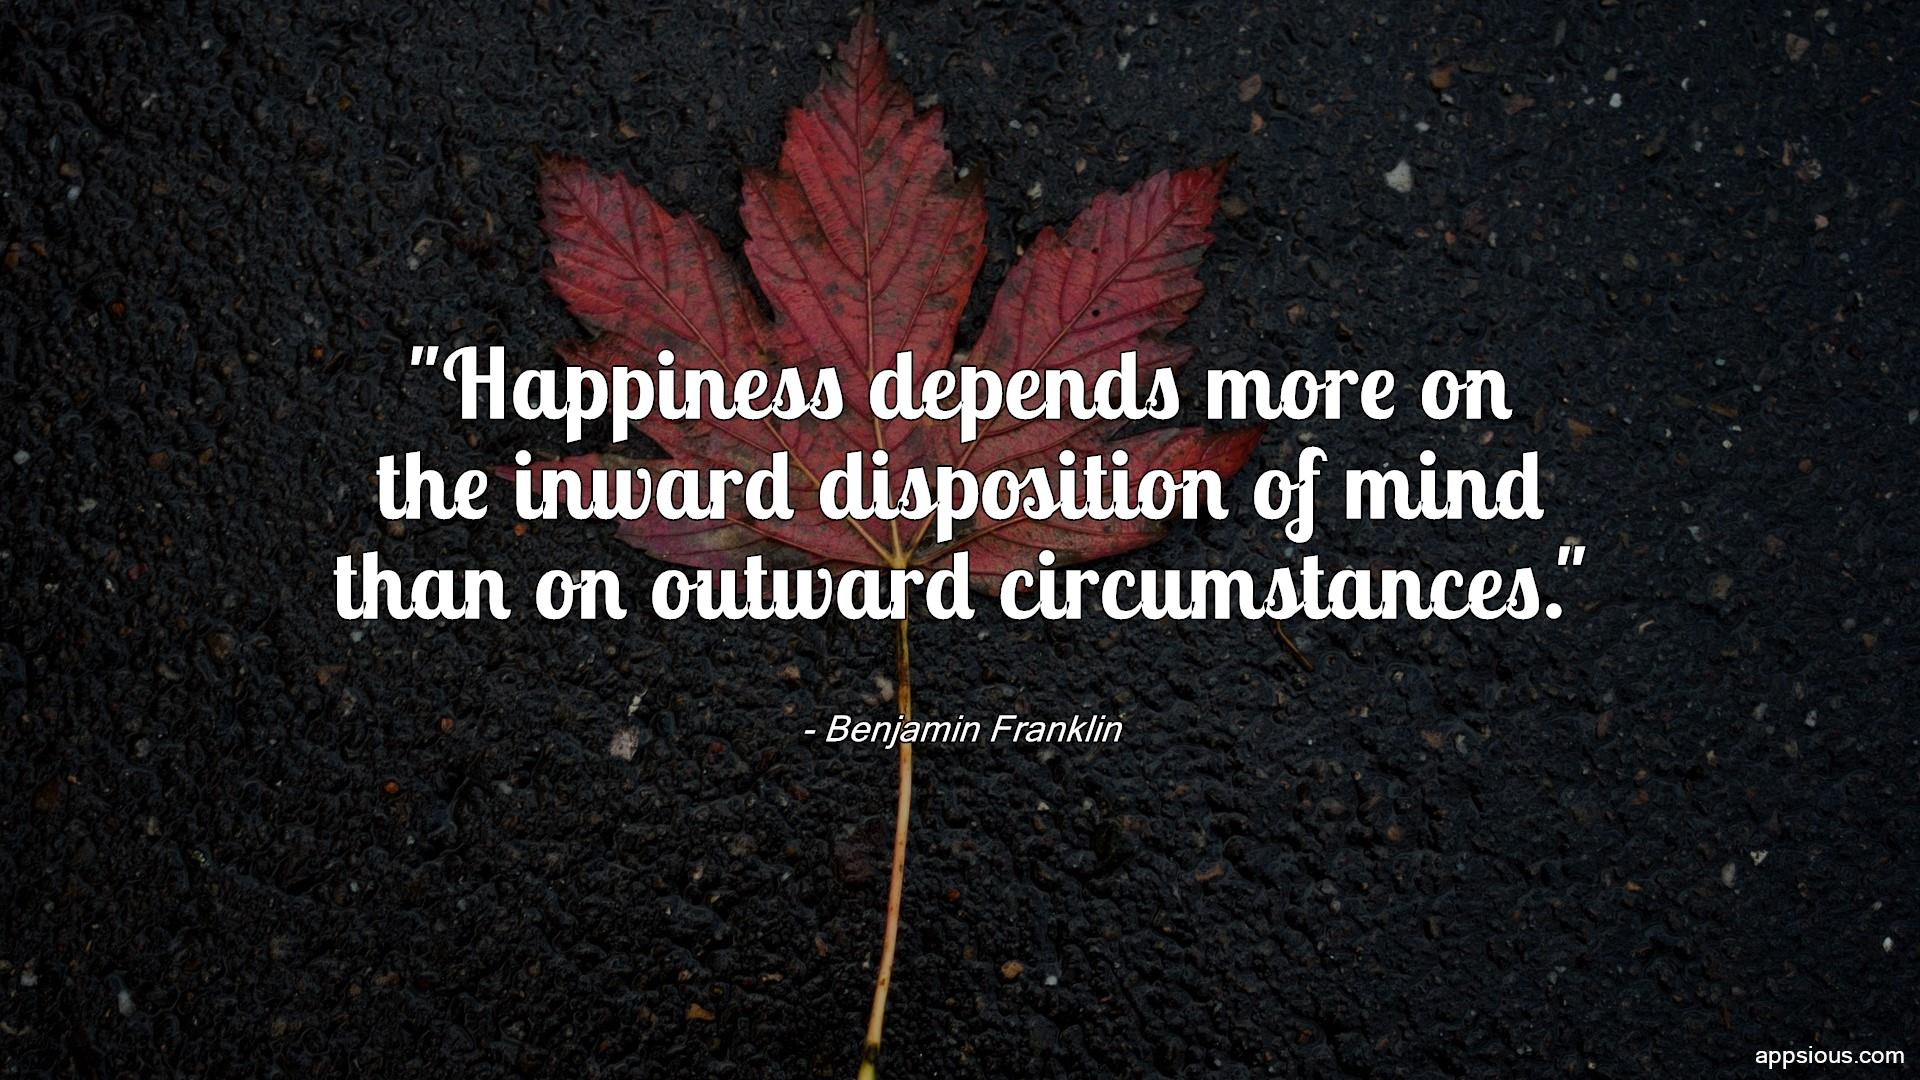 Happiness depends more on the inward disposition of mind than on outward circumstances.